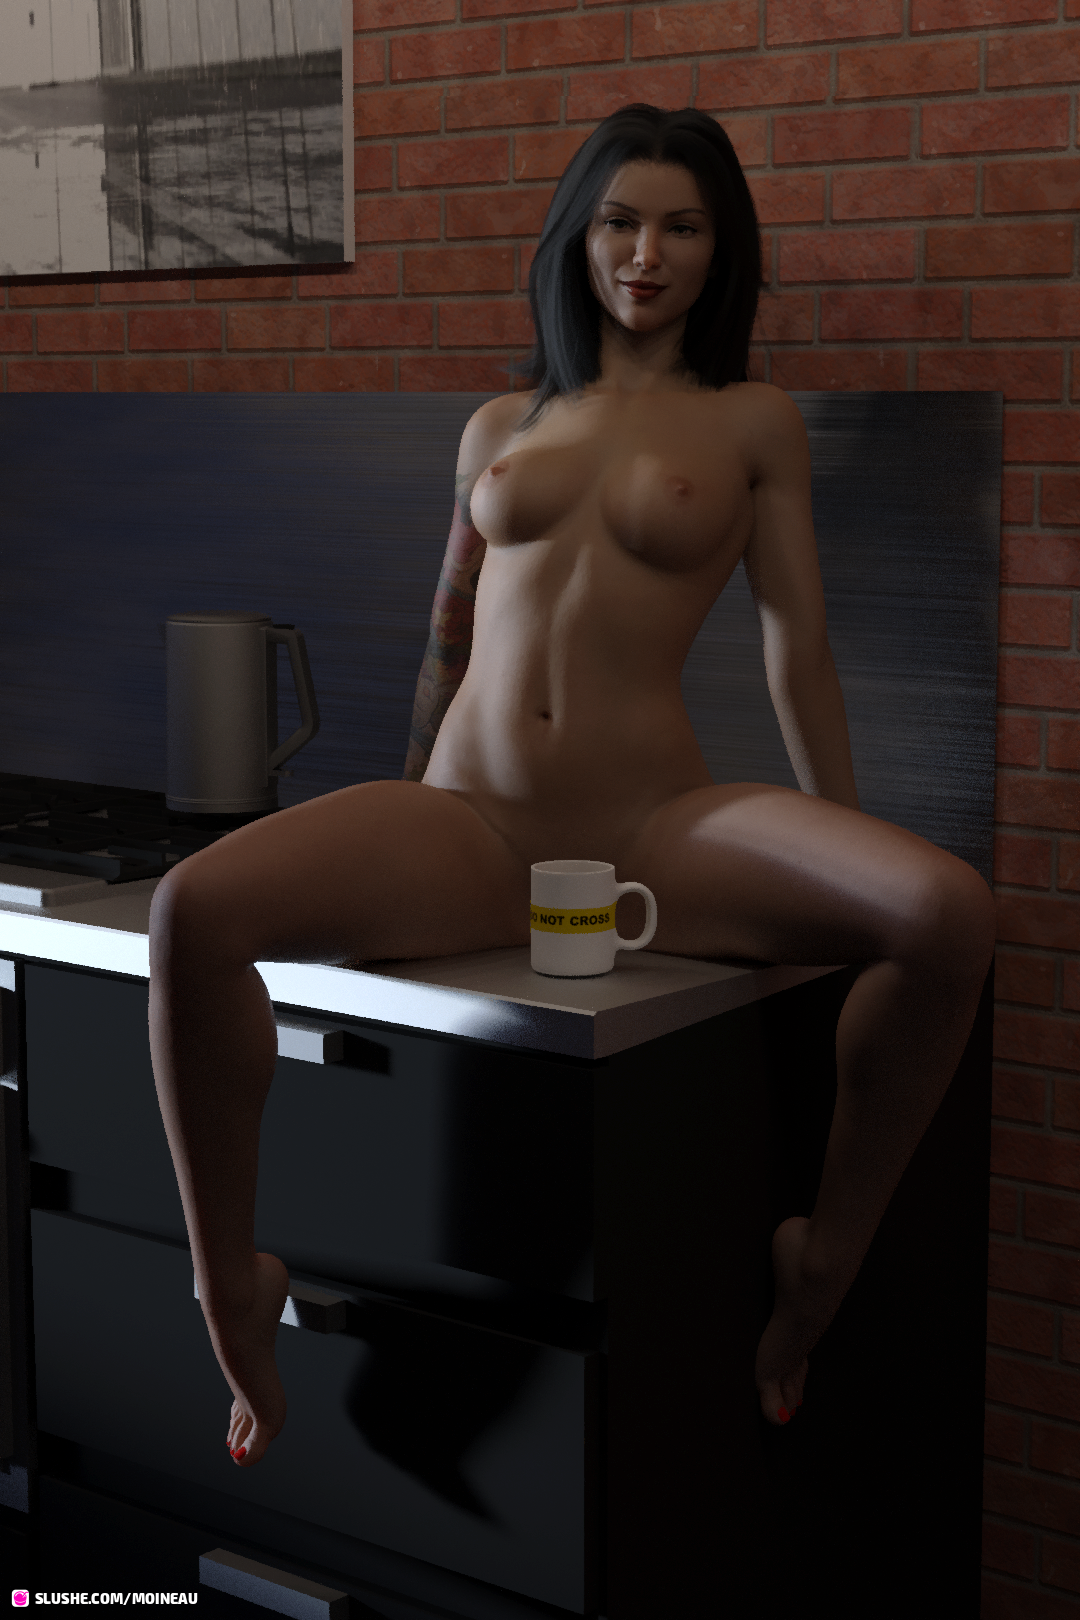 Want a coffee ?